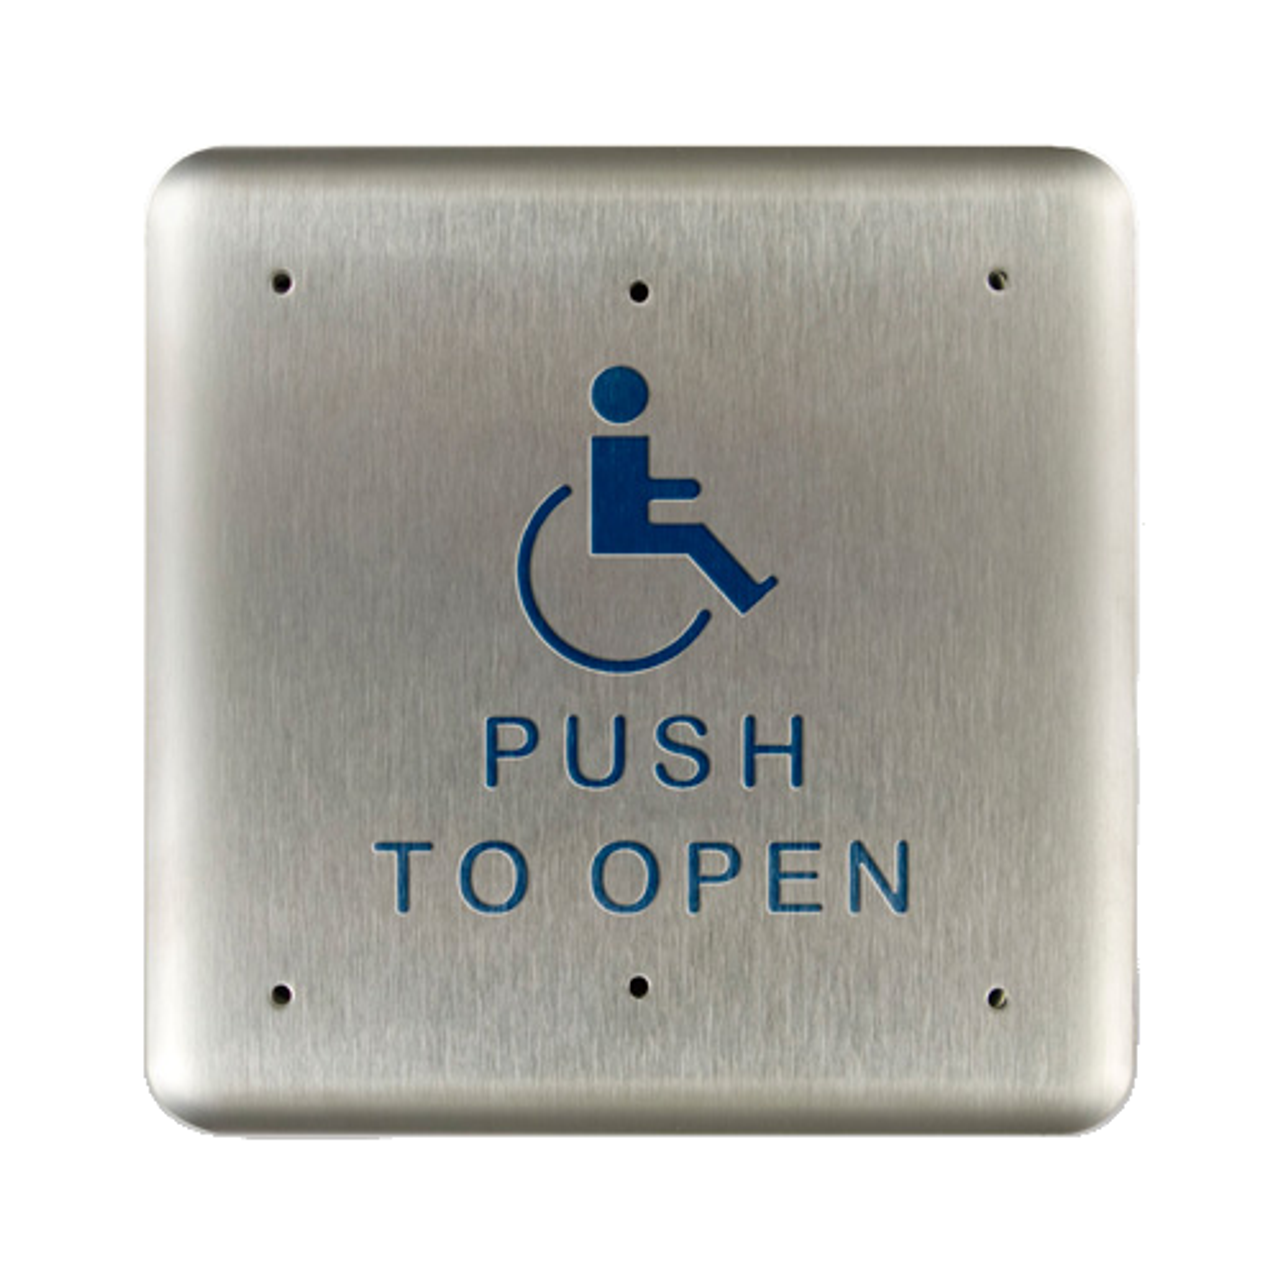 Bea 10pbs1 4 75 Quot Handicap Push To Open Square Push Plate